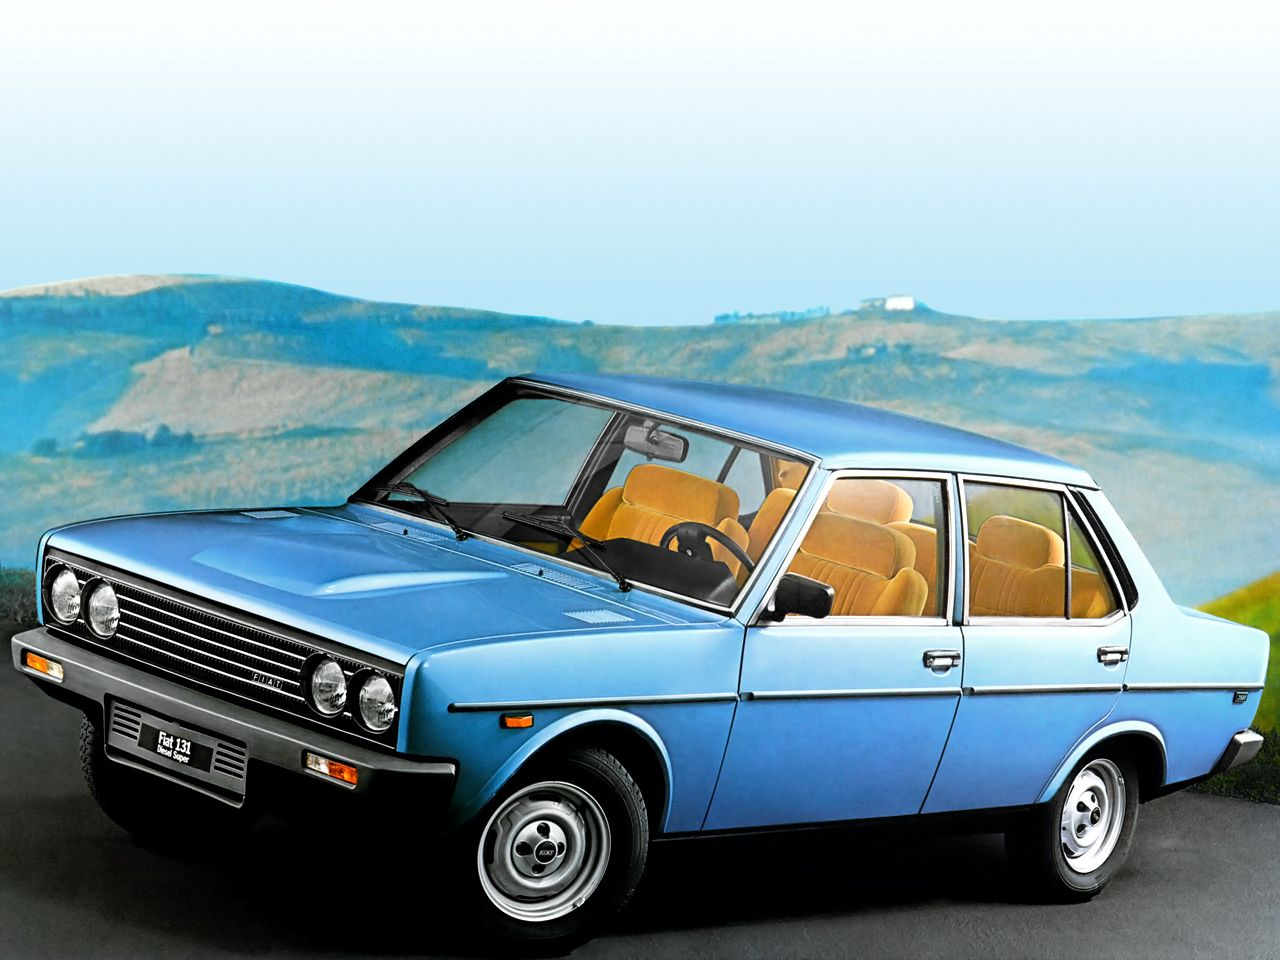 Fiat 131 Mirafiori I Used Own One Of These Same Colour And Interior Love This Car Fiat Cars Fiat Dream Cars